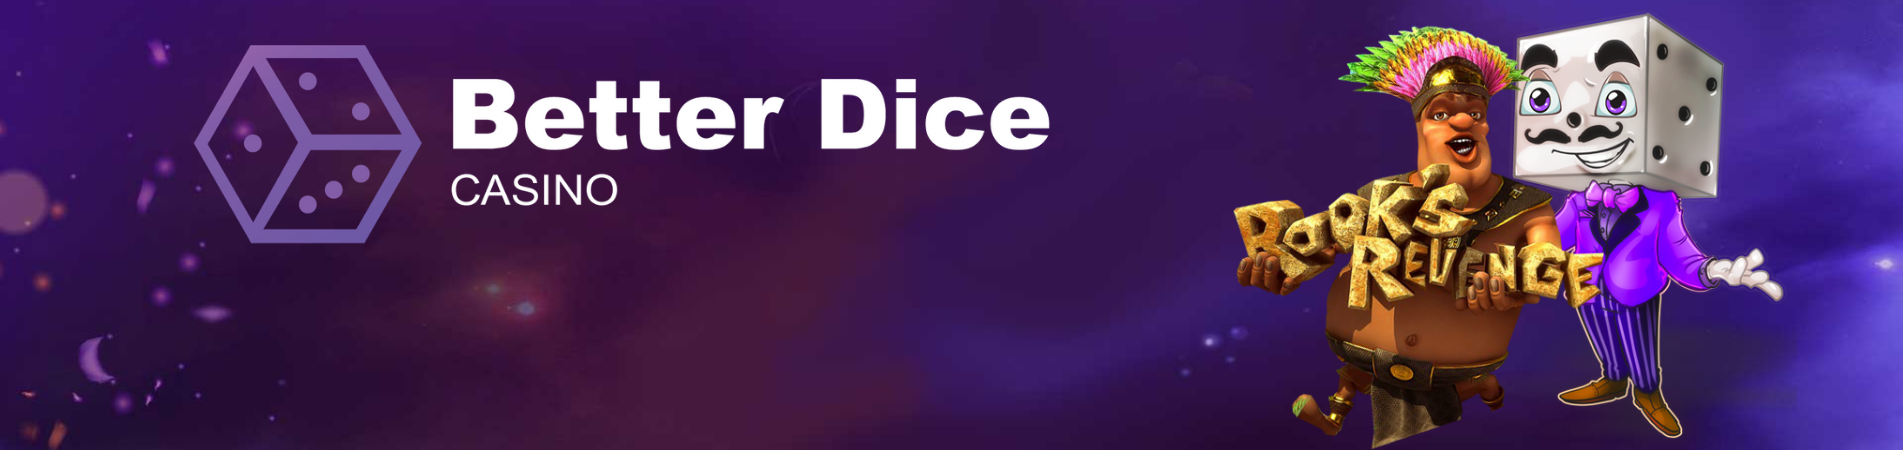 Better dice cover